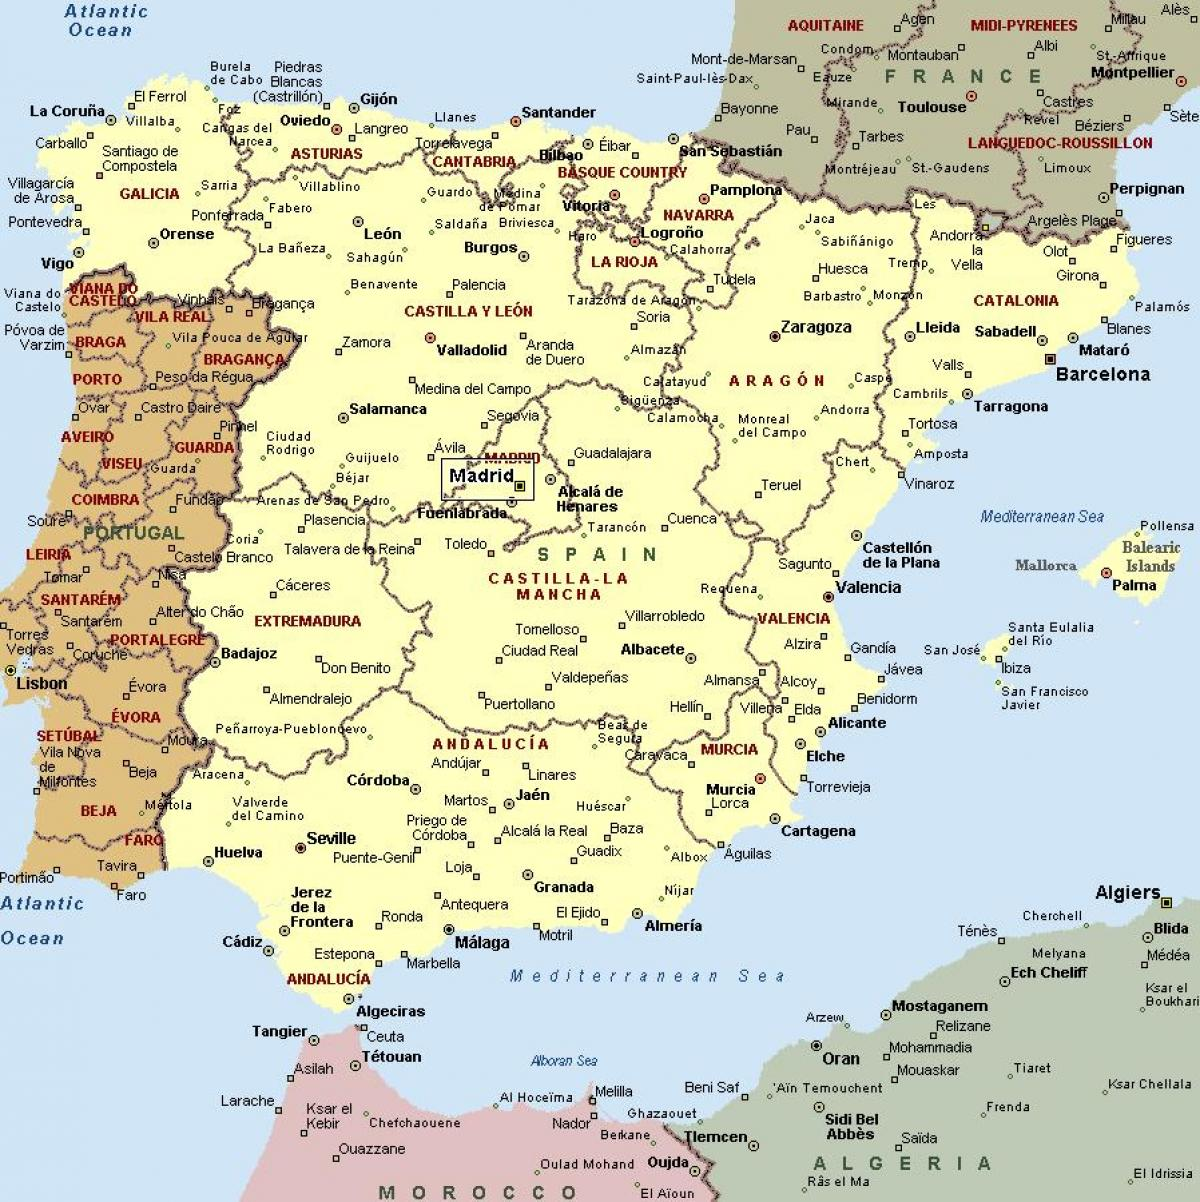 Map of Spain with cities - Map of Spain and cities (Southern Europe Map Of Cities South Spain on spain map regions and cities, map of palau cities, map of burundi cities, map of s korea cities, pamplona spain map cities, map of ussr cities, map of mexican riviera cities, map of niger cities, map of oceania cities, map of democratic republic of congo cities, map of new brunswick canada cities, map of the us cities, map of latin america cities, map europe cities, map of islam cities, spain major cities, map of the carolinas cities, map of kosovo cities, map of atlantic ocean cities, map of guyana cities,